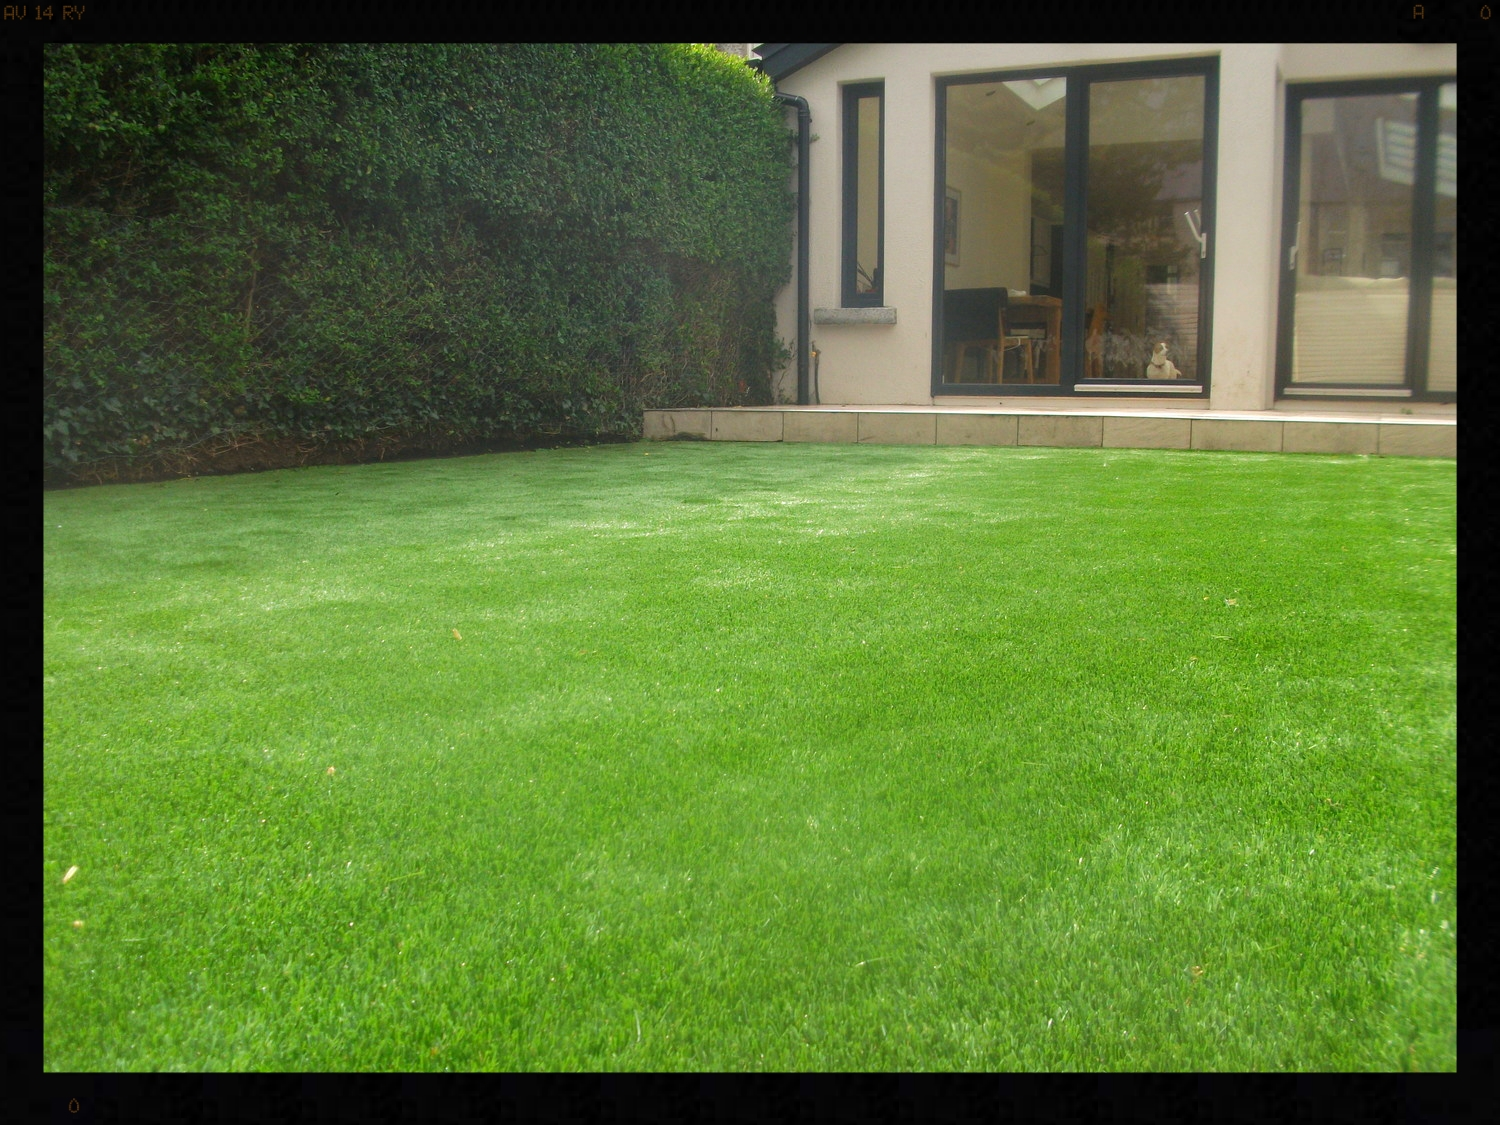 image click through for Dartry Finesse lawn installation